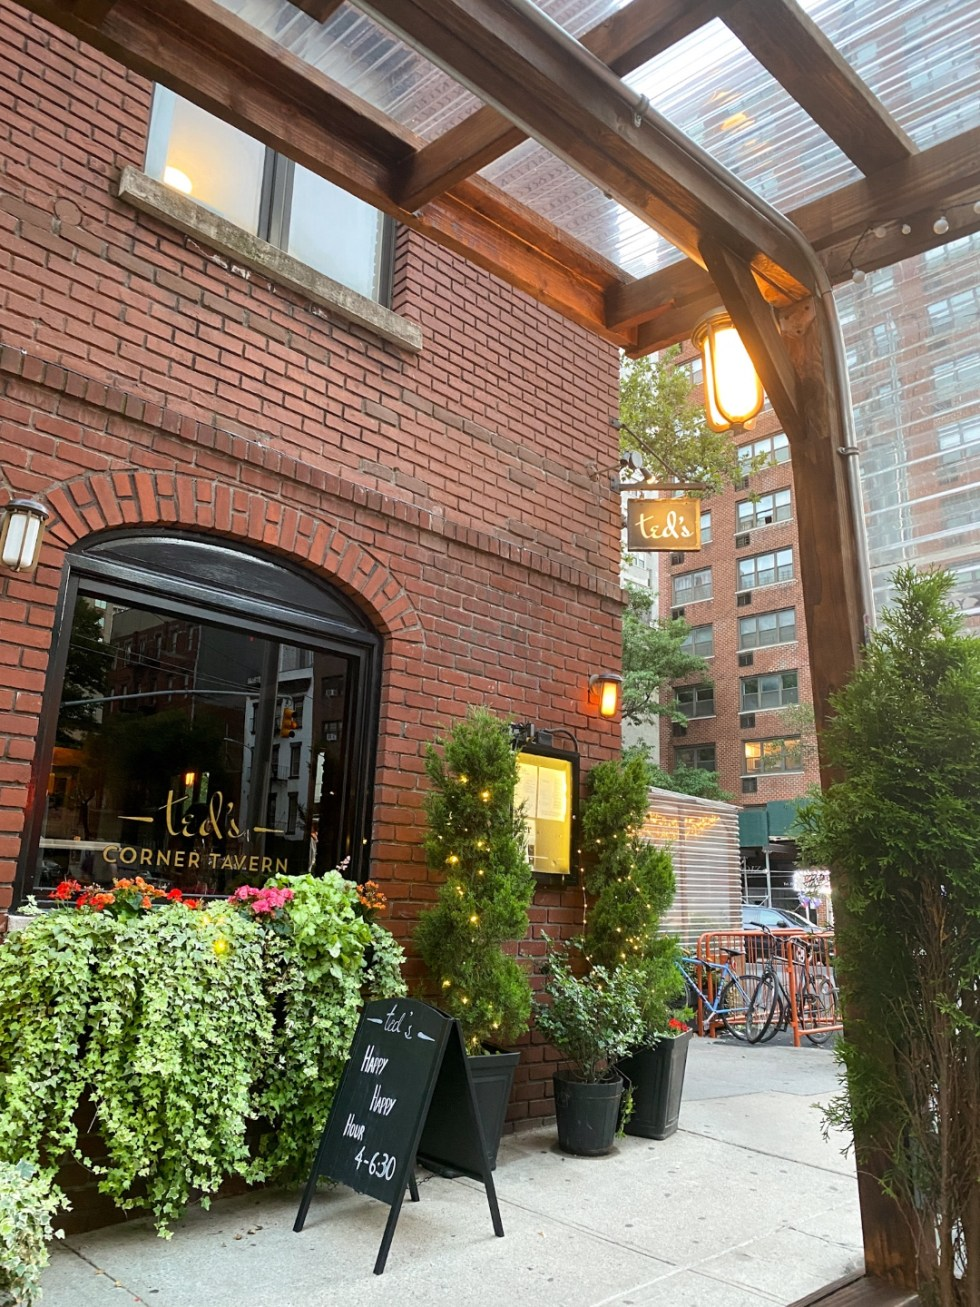 NYC Summer Weekend: Things to Do in NYC in the Summer - I'm Fixin' To - @imfixintoblog   NYC Summer Weekend by popular NC travel blog, I'm Fixin' To: image of Ted's Corner Tavern.